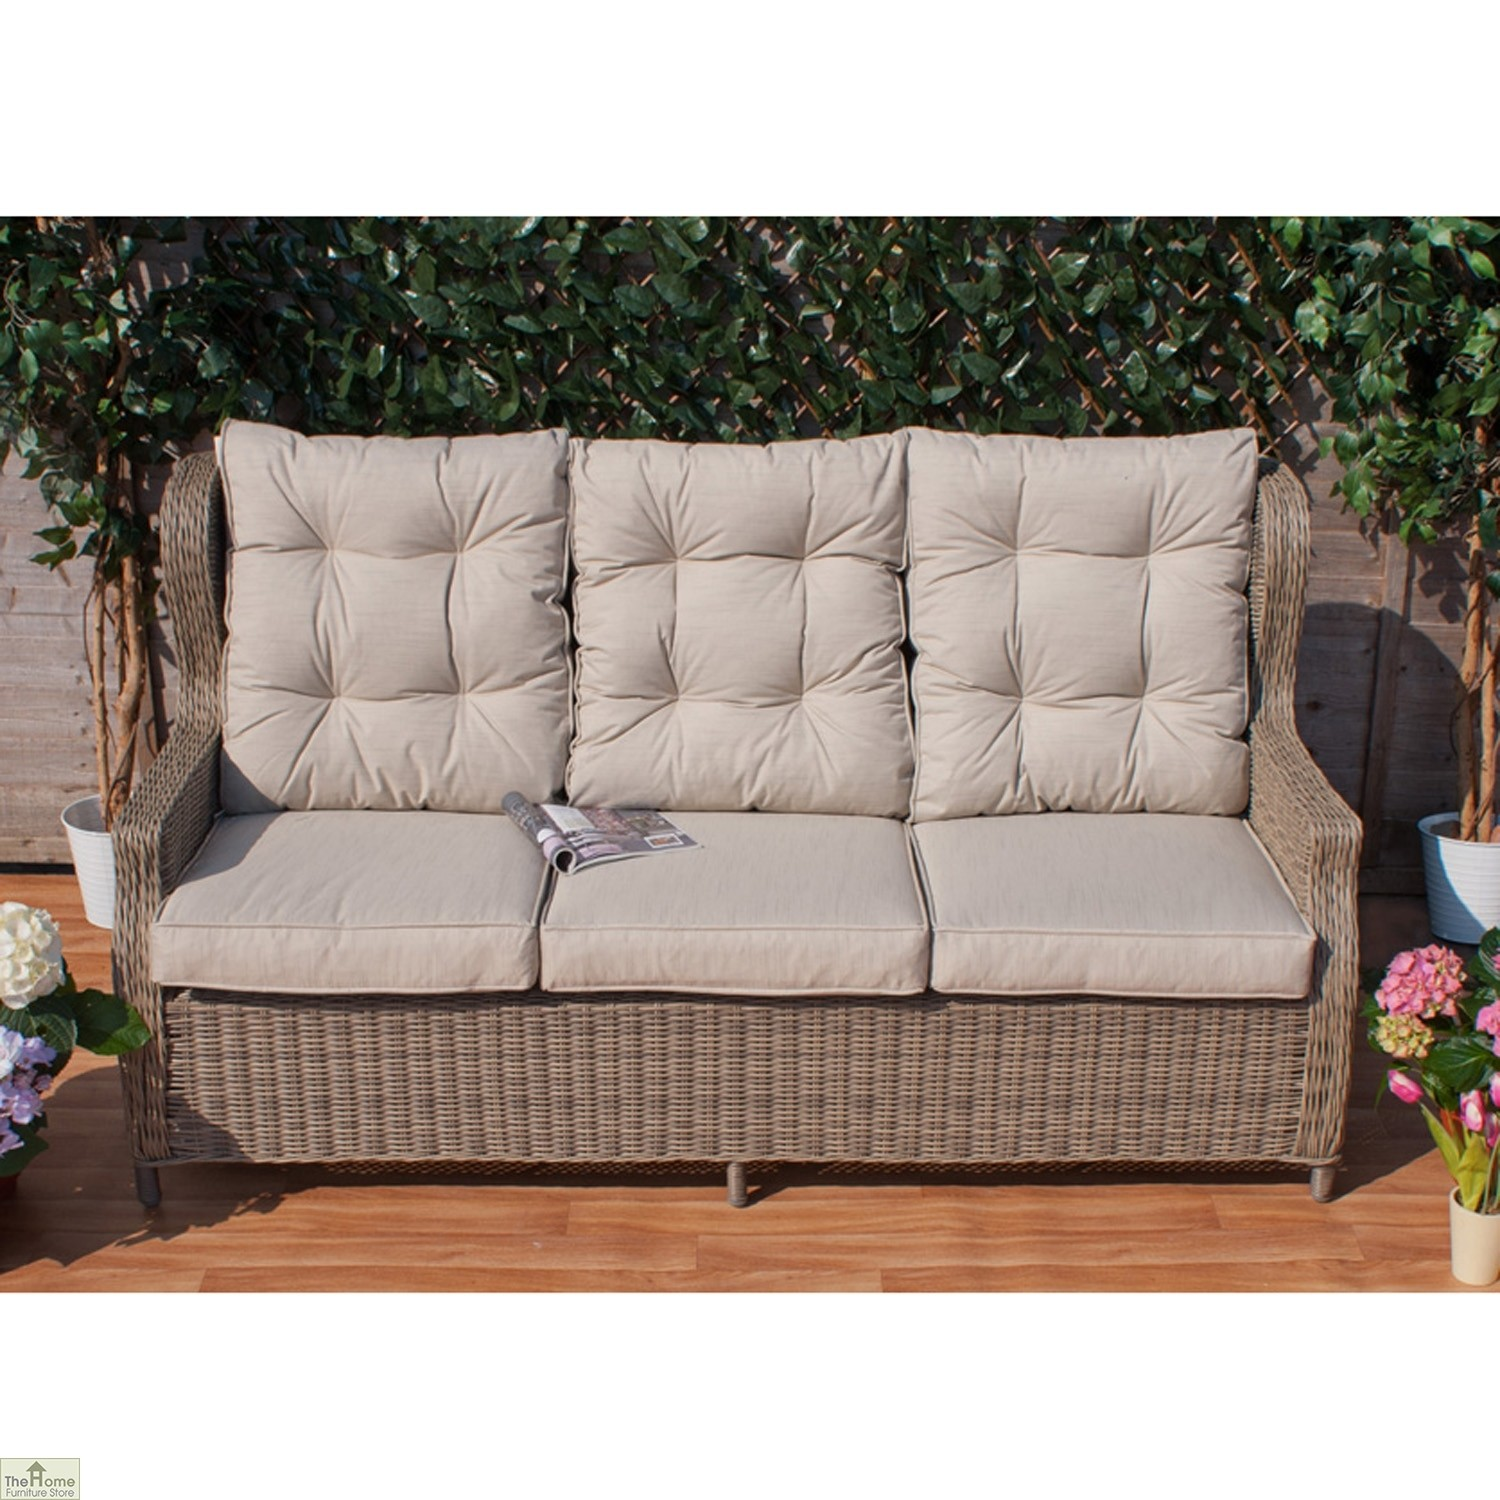 Casamore Corfu High Back 3 Seater Sofa_1